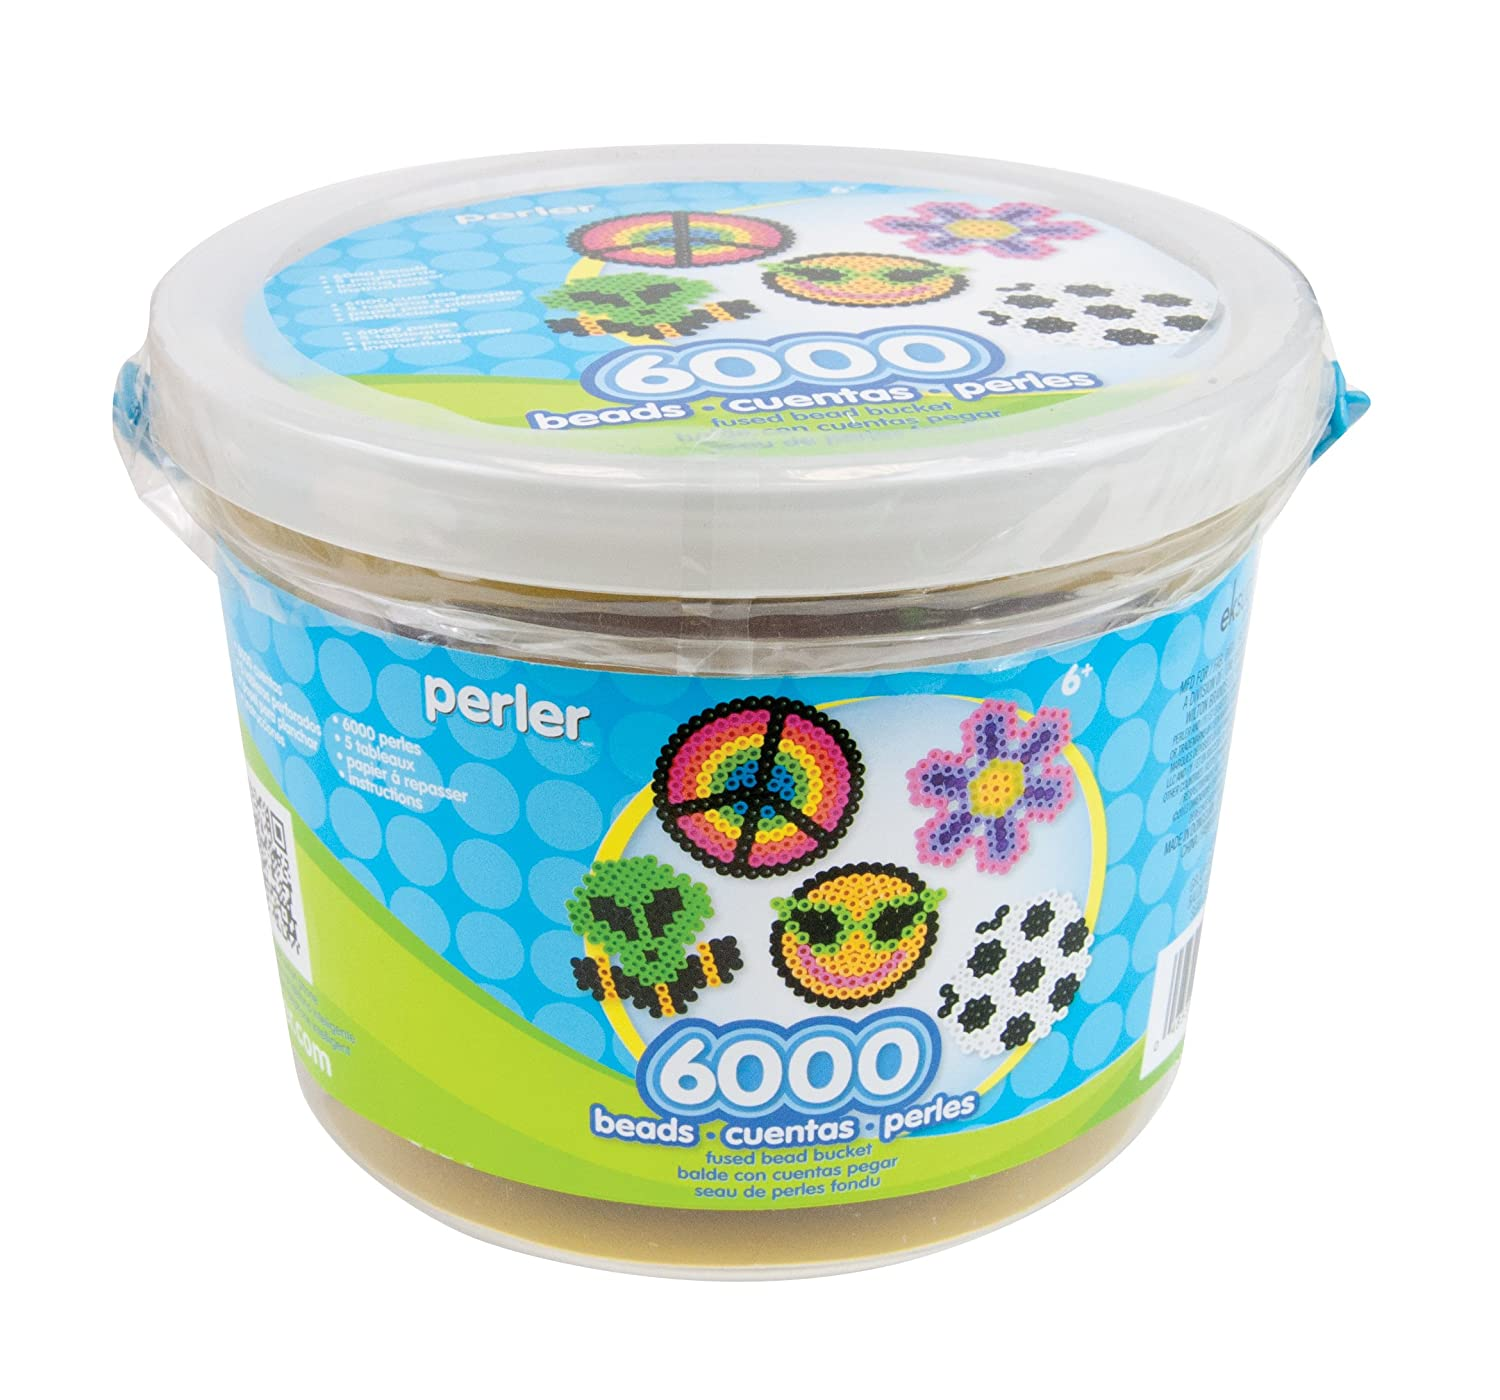 Perler Beads 6,000 Count Bucket